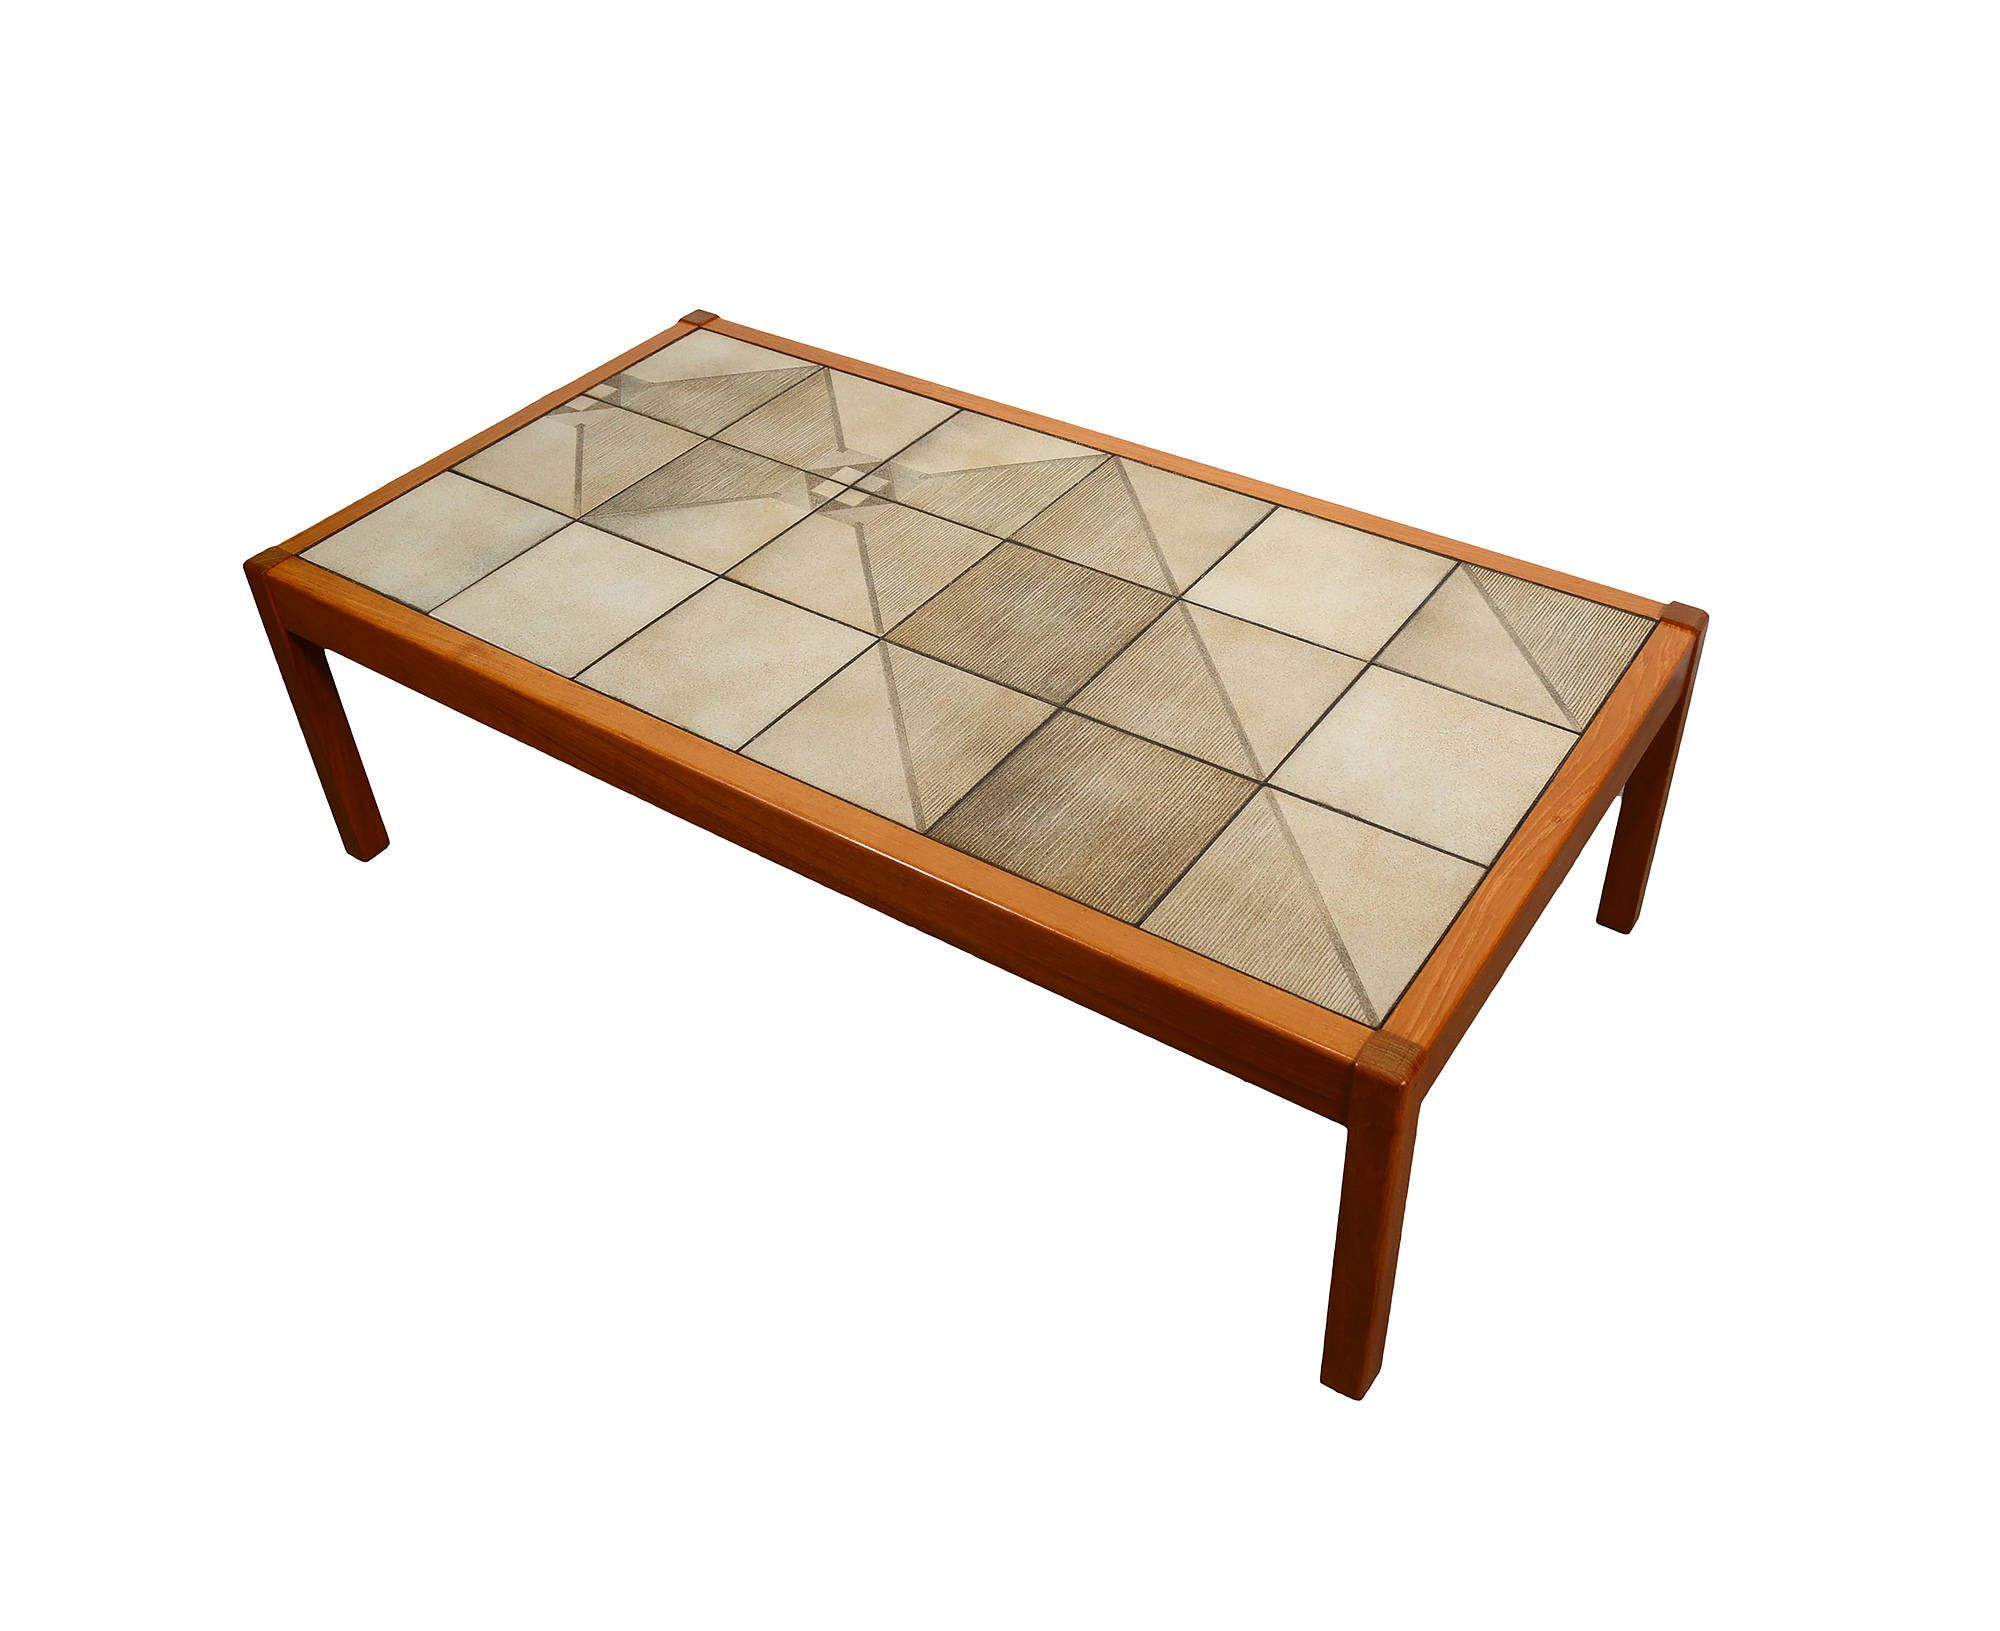 Teak Coffee Table with Tile Top Sofa Table Danish Modern Gangso